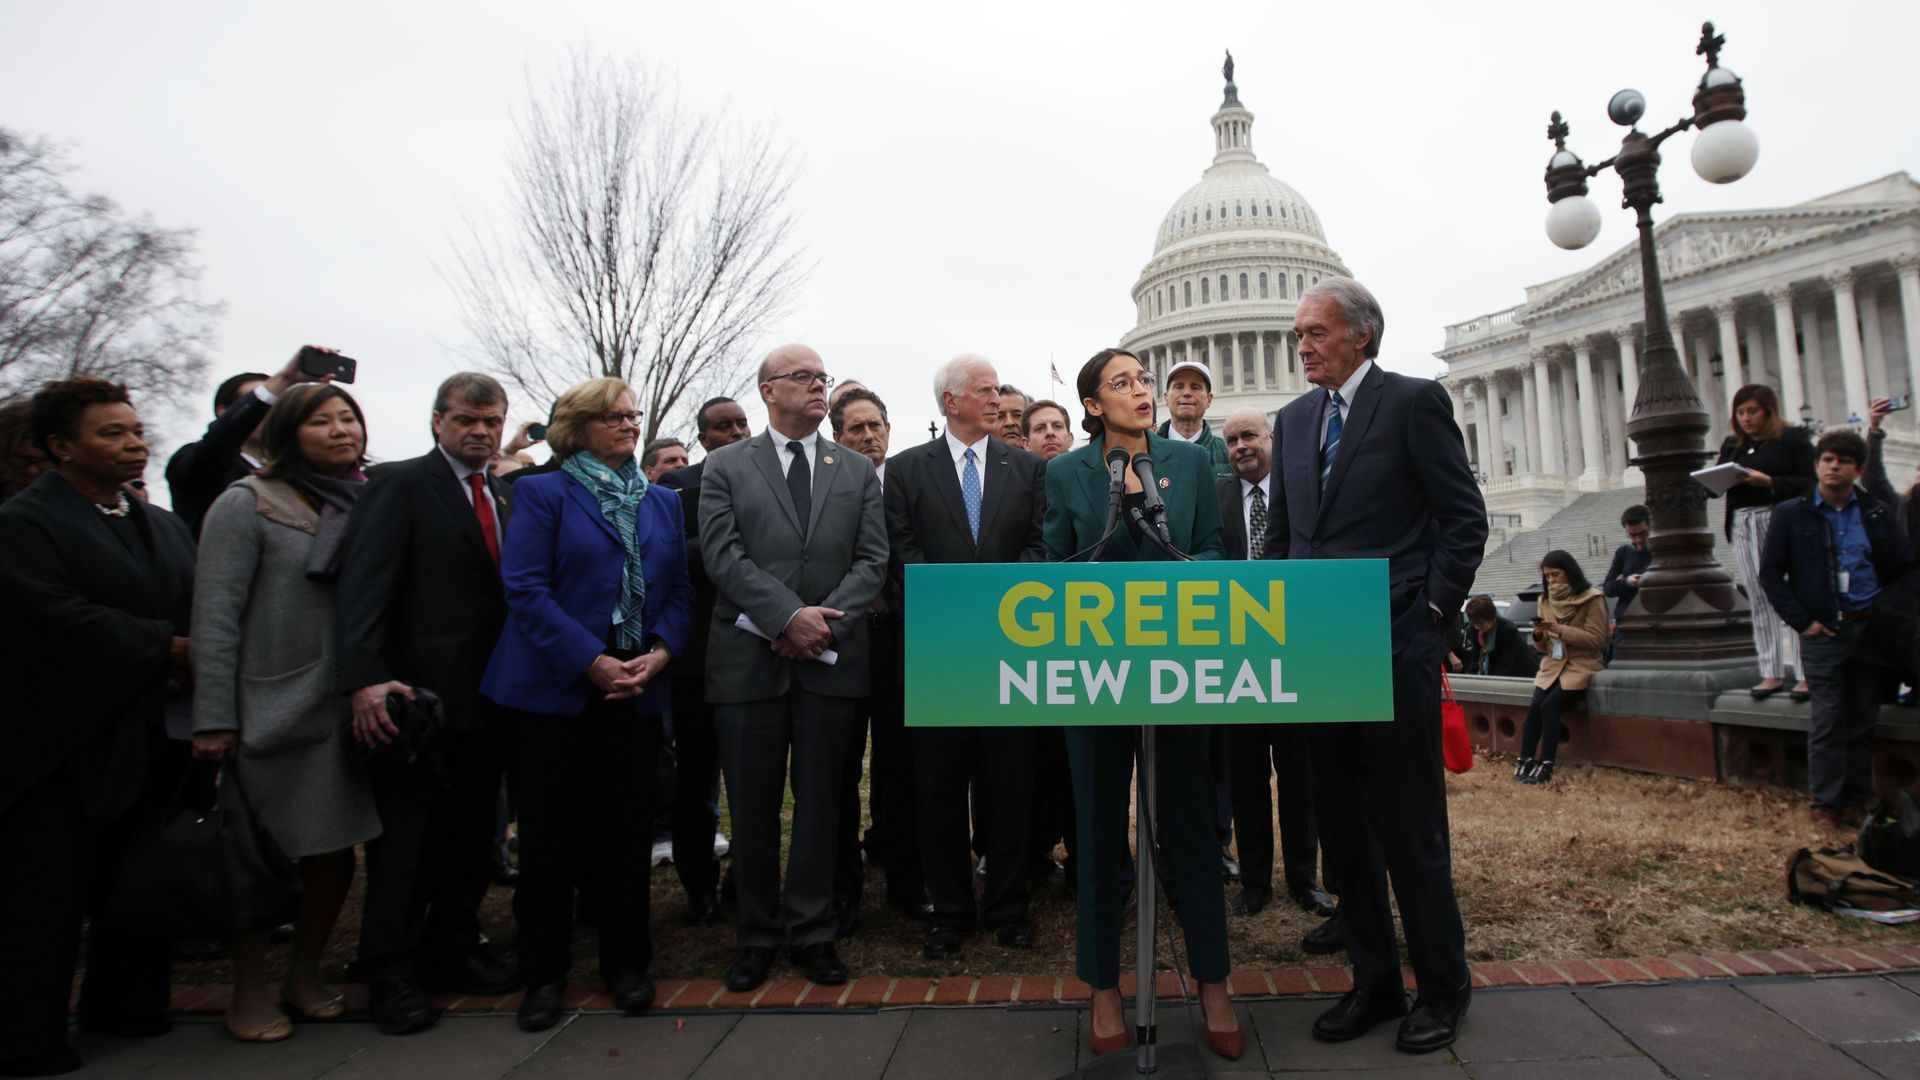 "In this image, Alexandria Ocasio-Cortez stands alongside other Democrats outside the Capitol building on a sunny day in Washington. They hold a banner that says ""Green New Deal."""